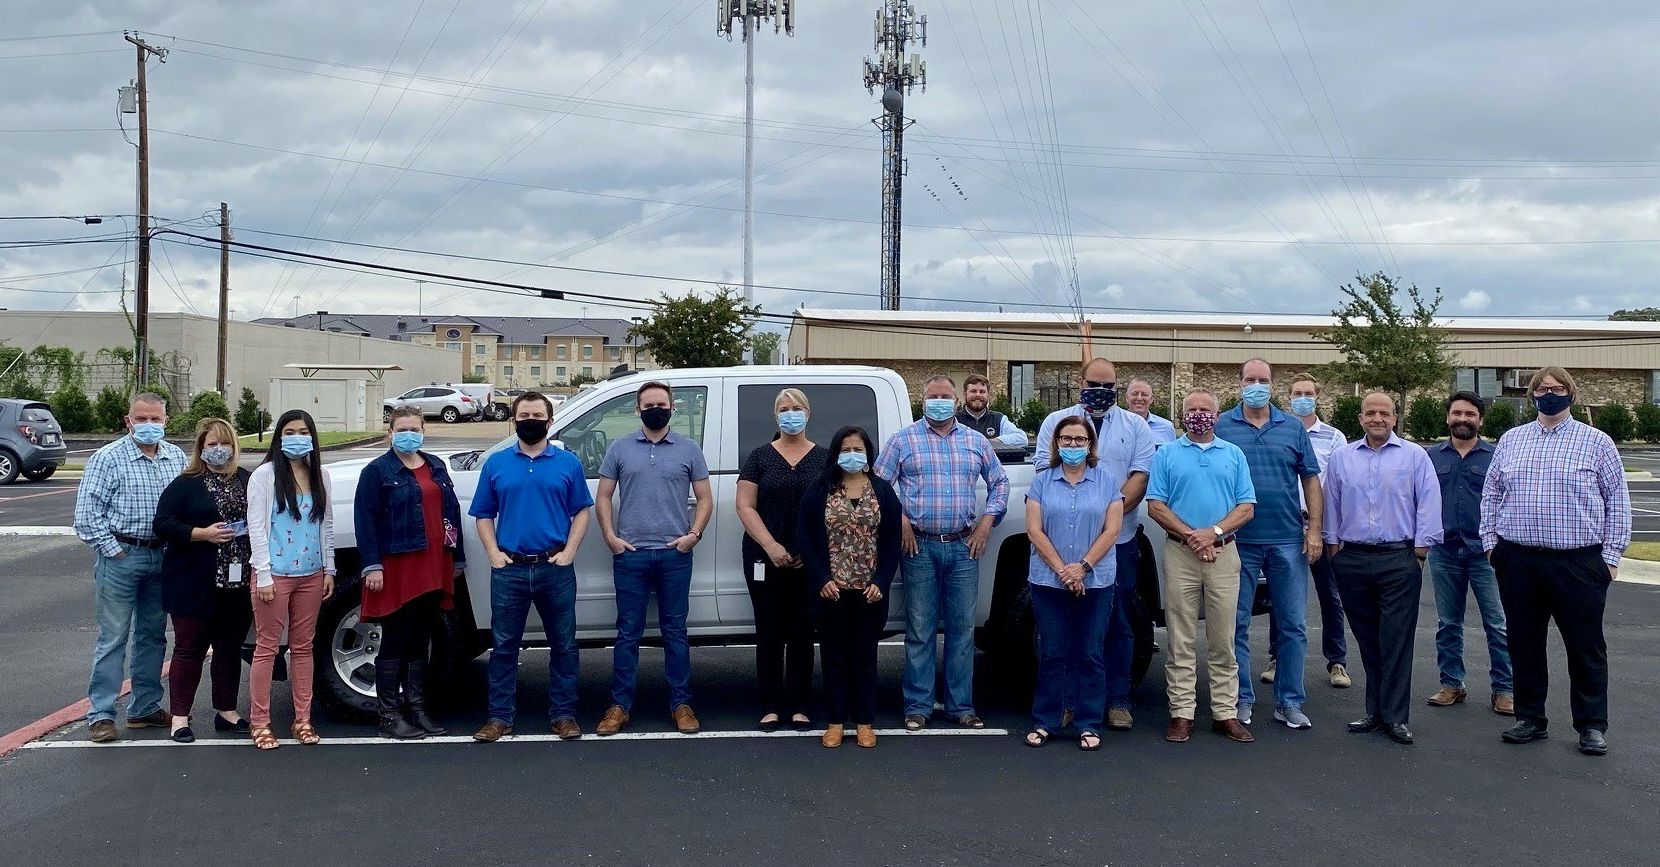 U.S. Energy Development Corporation and Mission Arlington staff pose together after the corporation donated a Chevy Silverado truck to the food pantry.